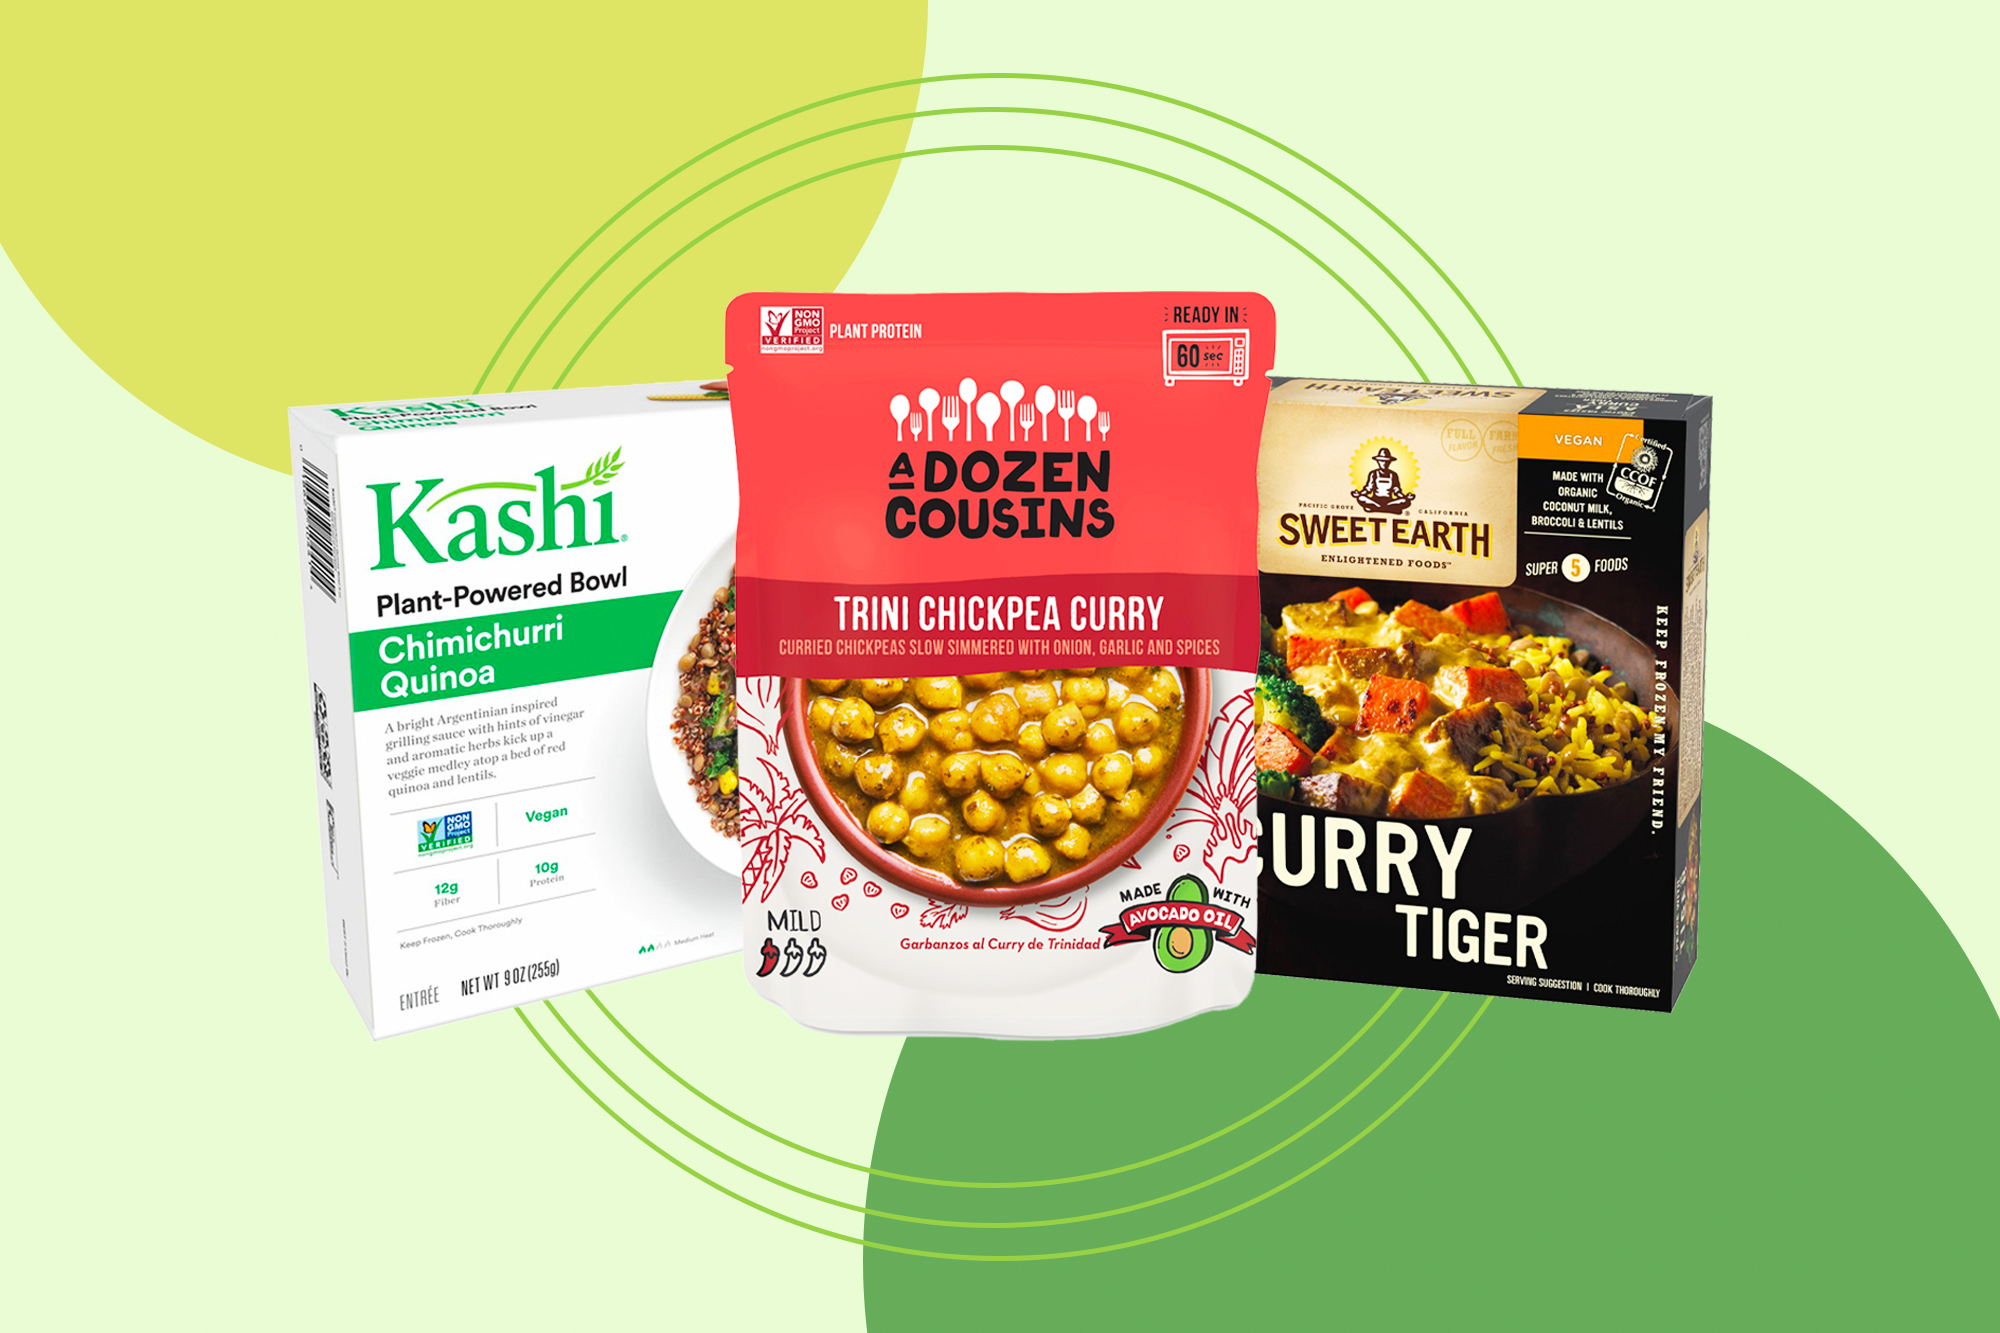 Trini Chickpea Curry, Kellogg's Kashi Plant-Based Protein Bowl, Vegan, Frozen Meal, Chimichurri Quinoa, and Sweet Earth Vegan Frozen Natural Foods Curry Tiger on a designed background